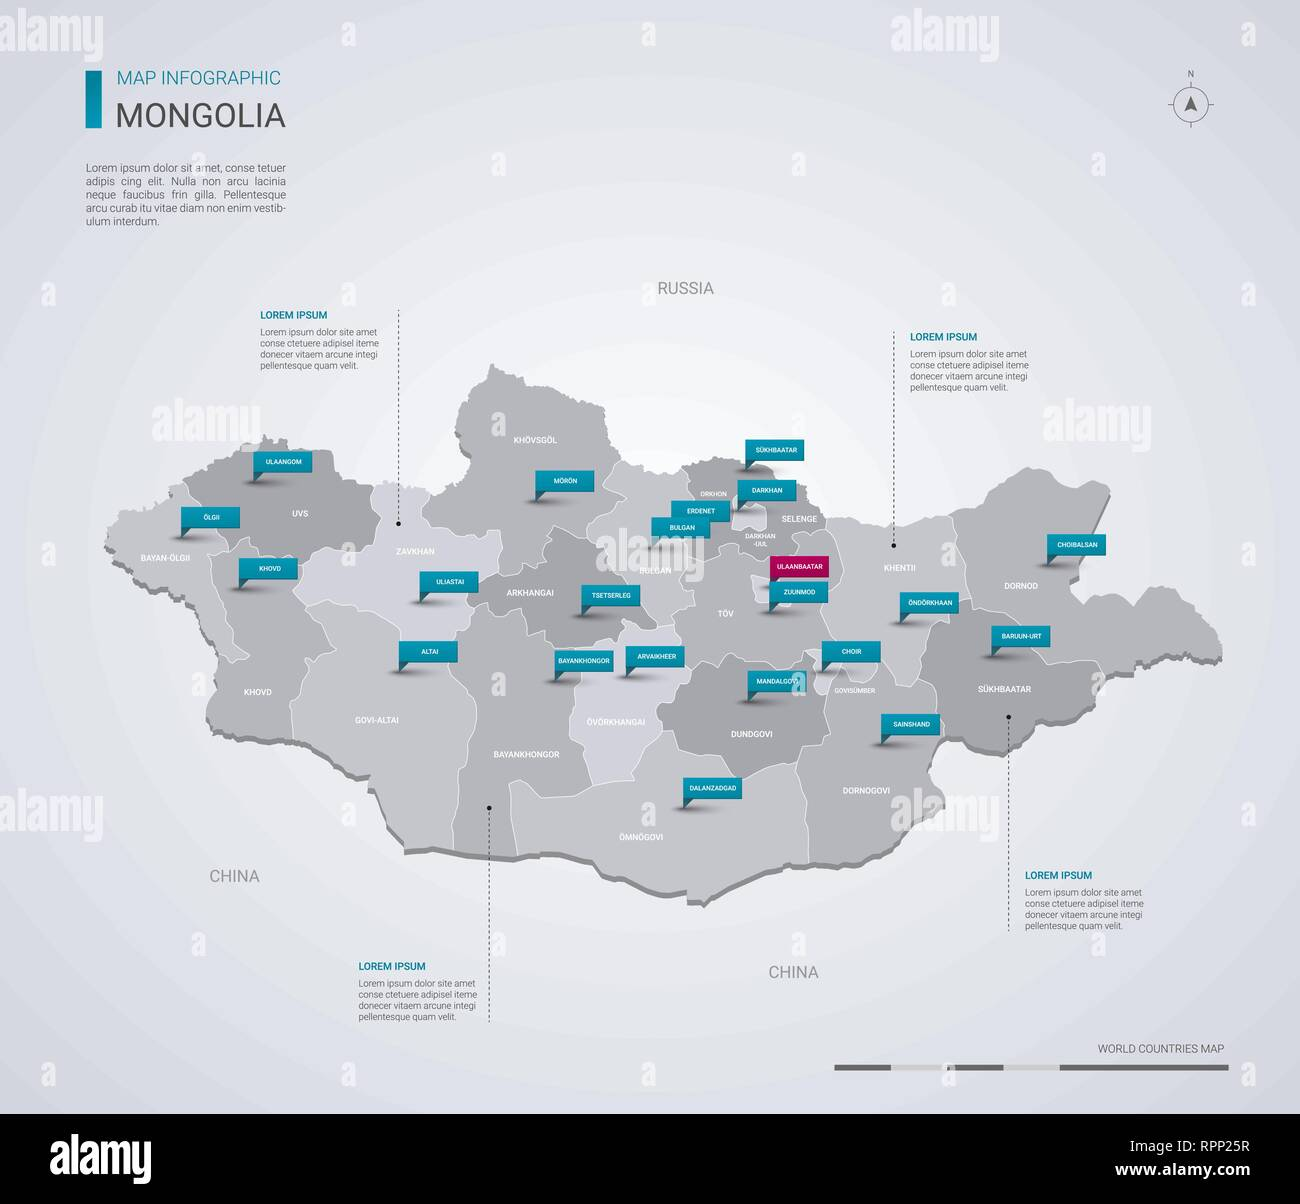 Mongolia vector map with infographic elements, pointer marks. Editable template with regions, cities and capital Ulaanbaatar. - Stock Vector